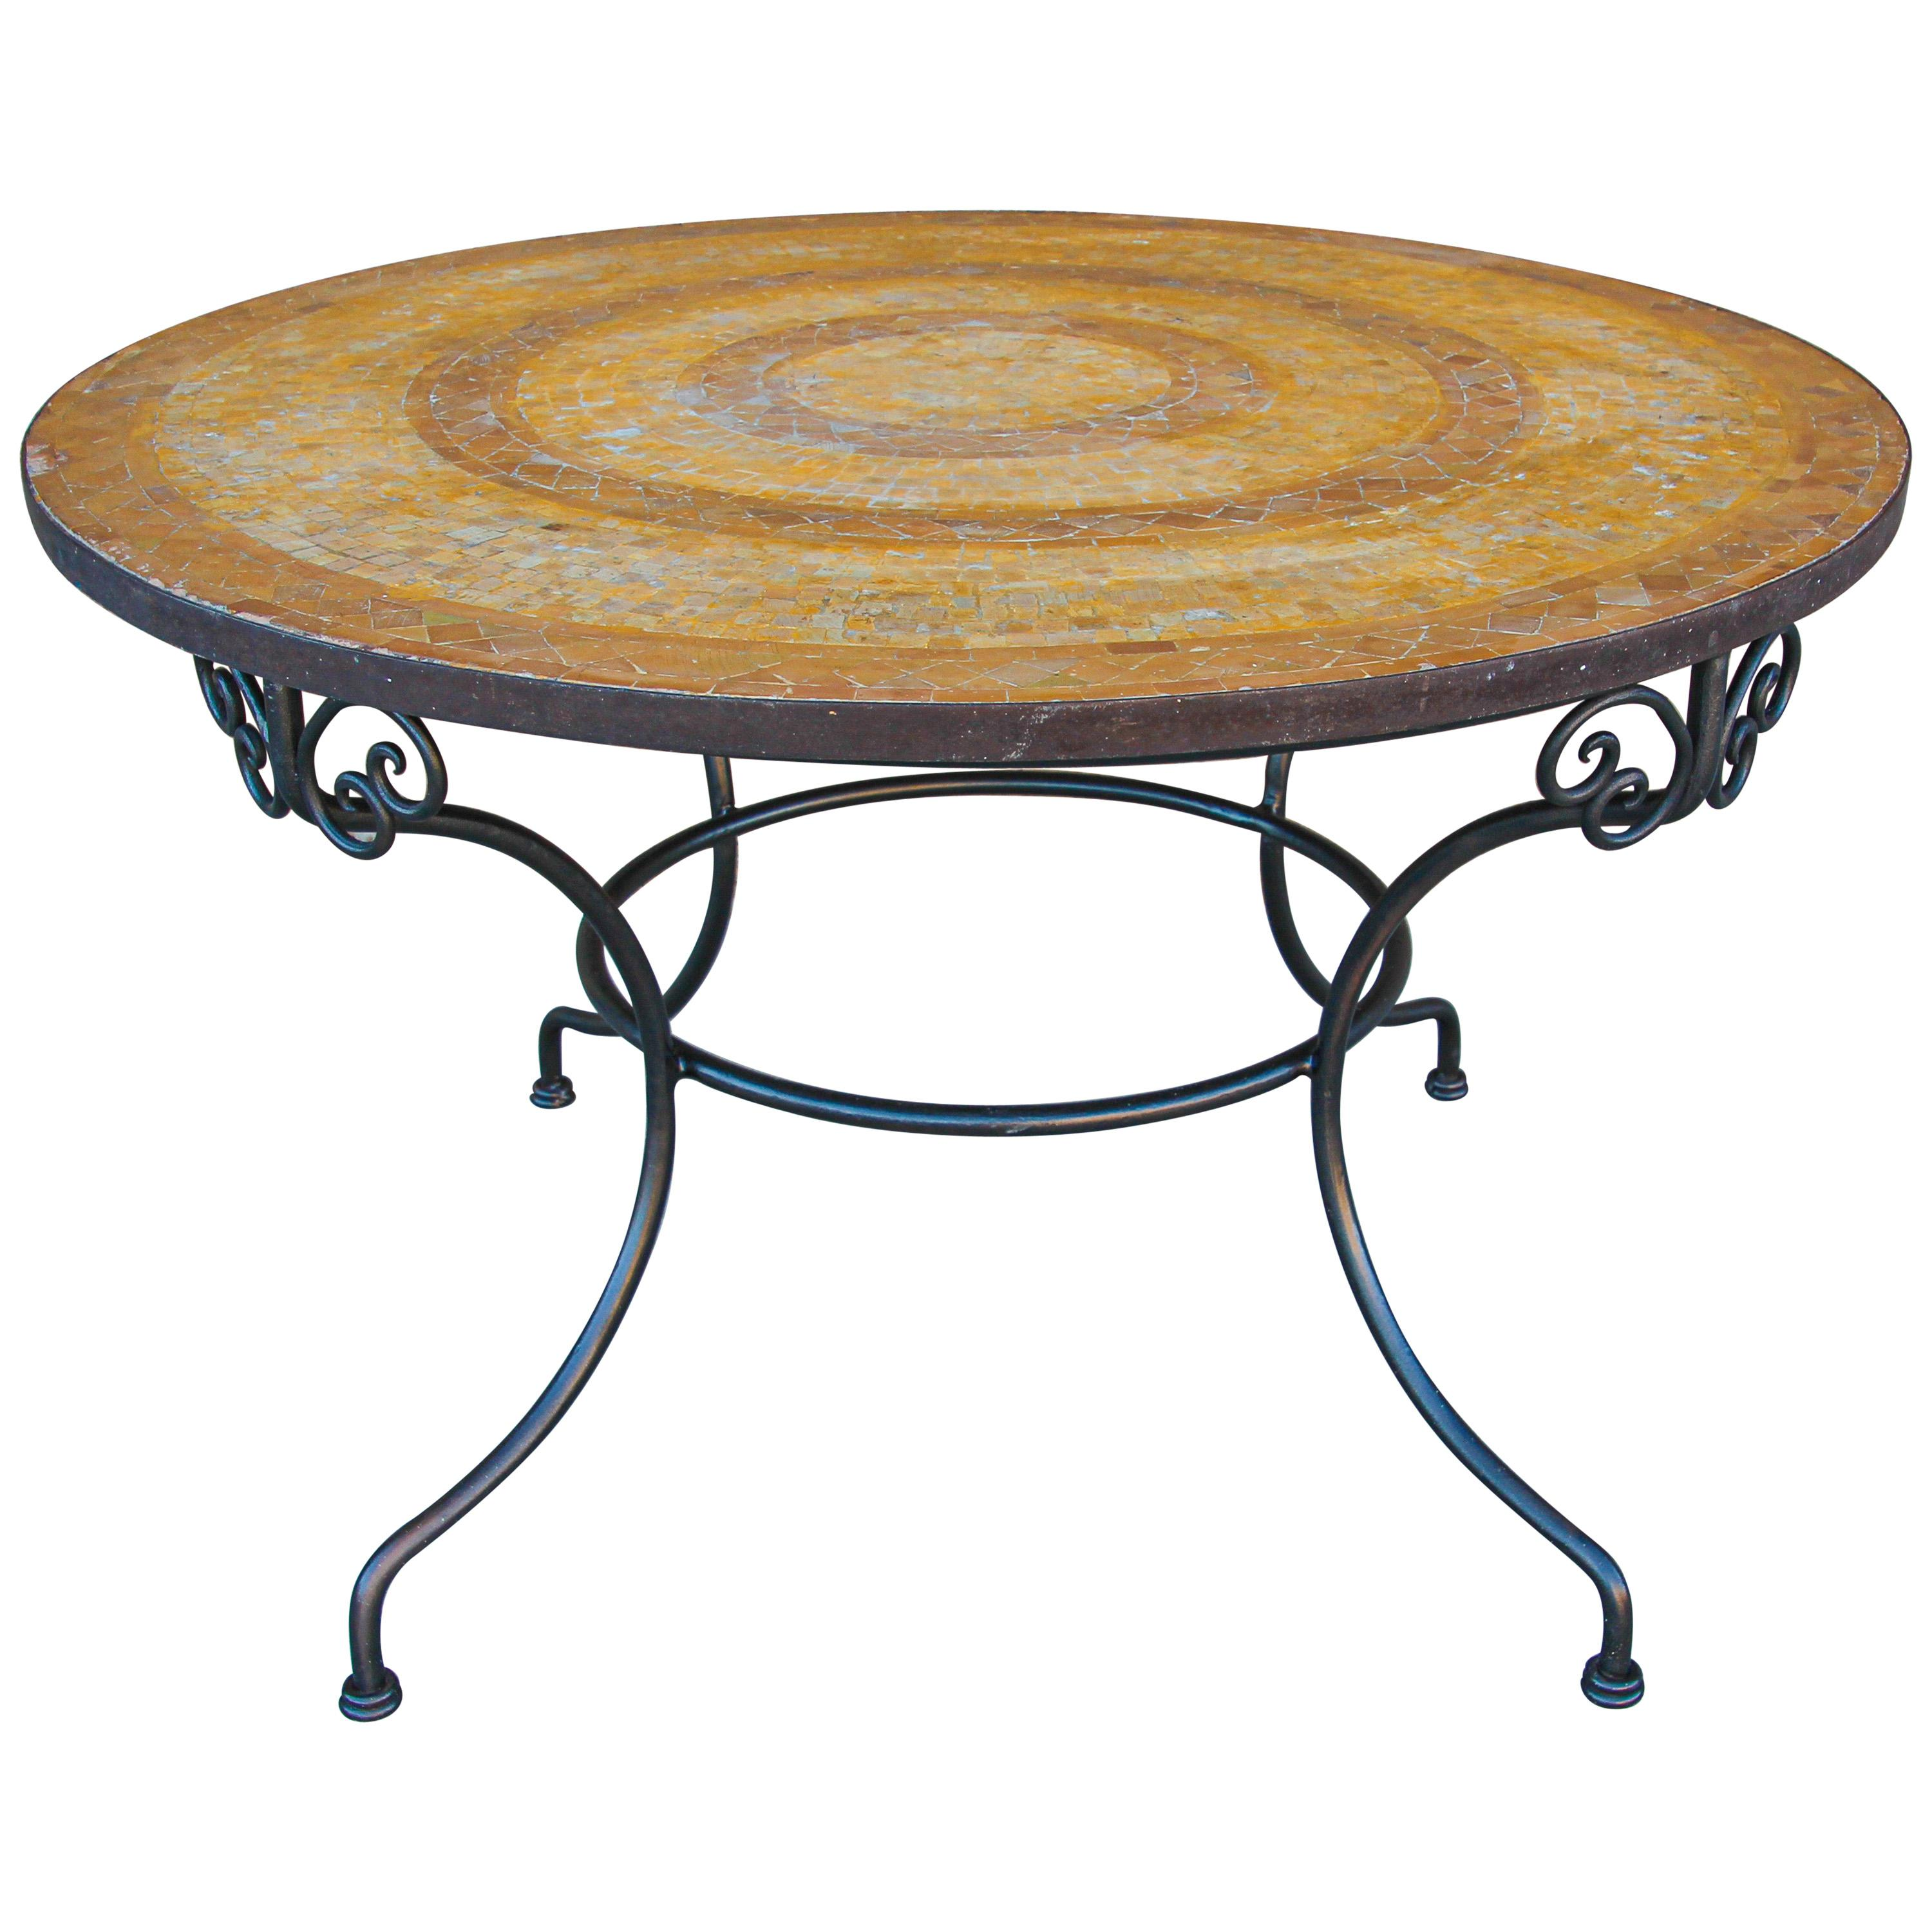 Moroccan Mosaic Stone Inlaid Table Indoor or Outdoor